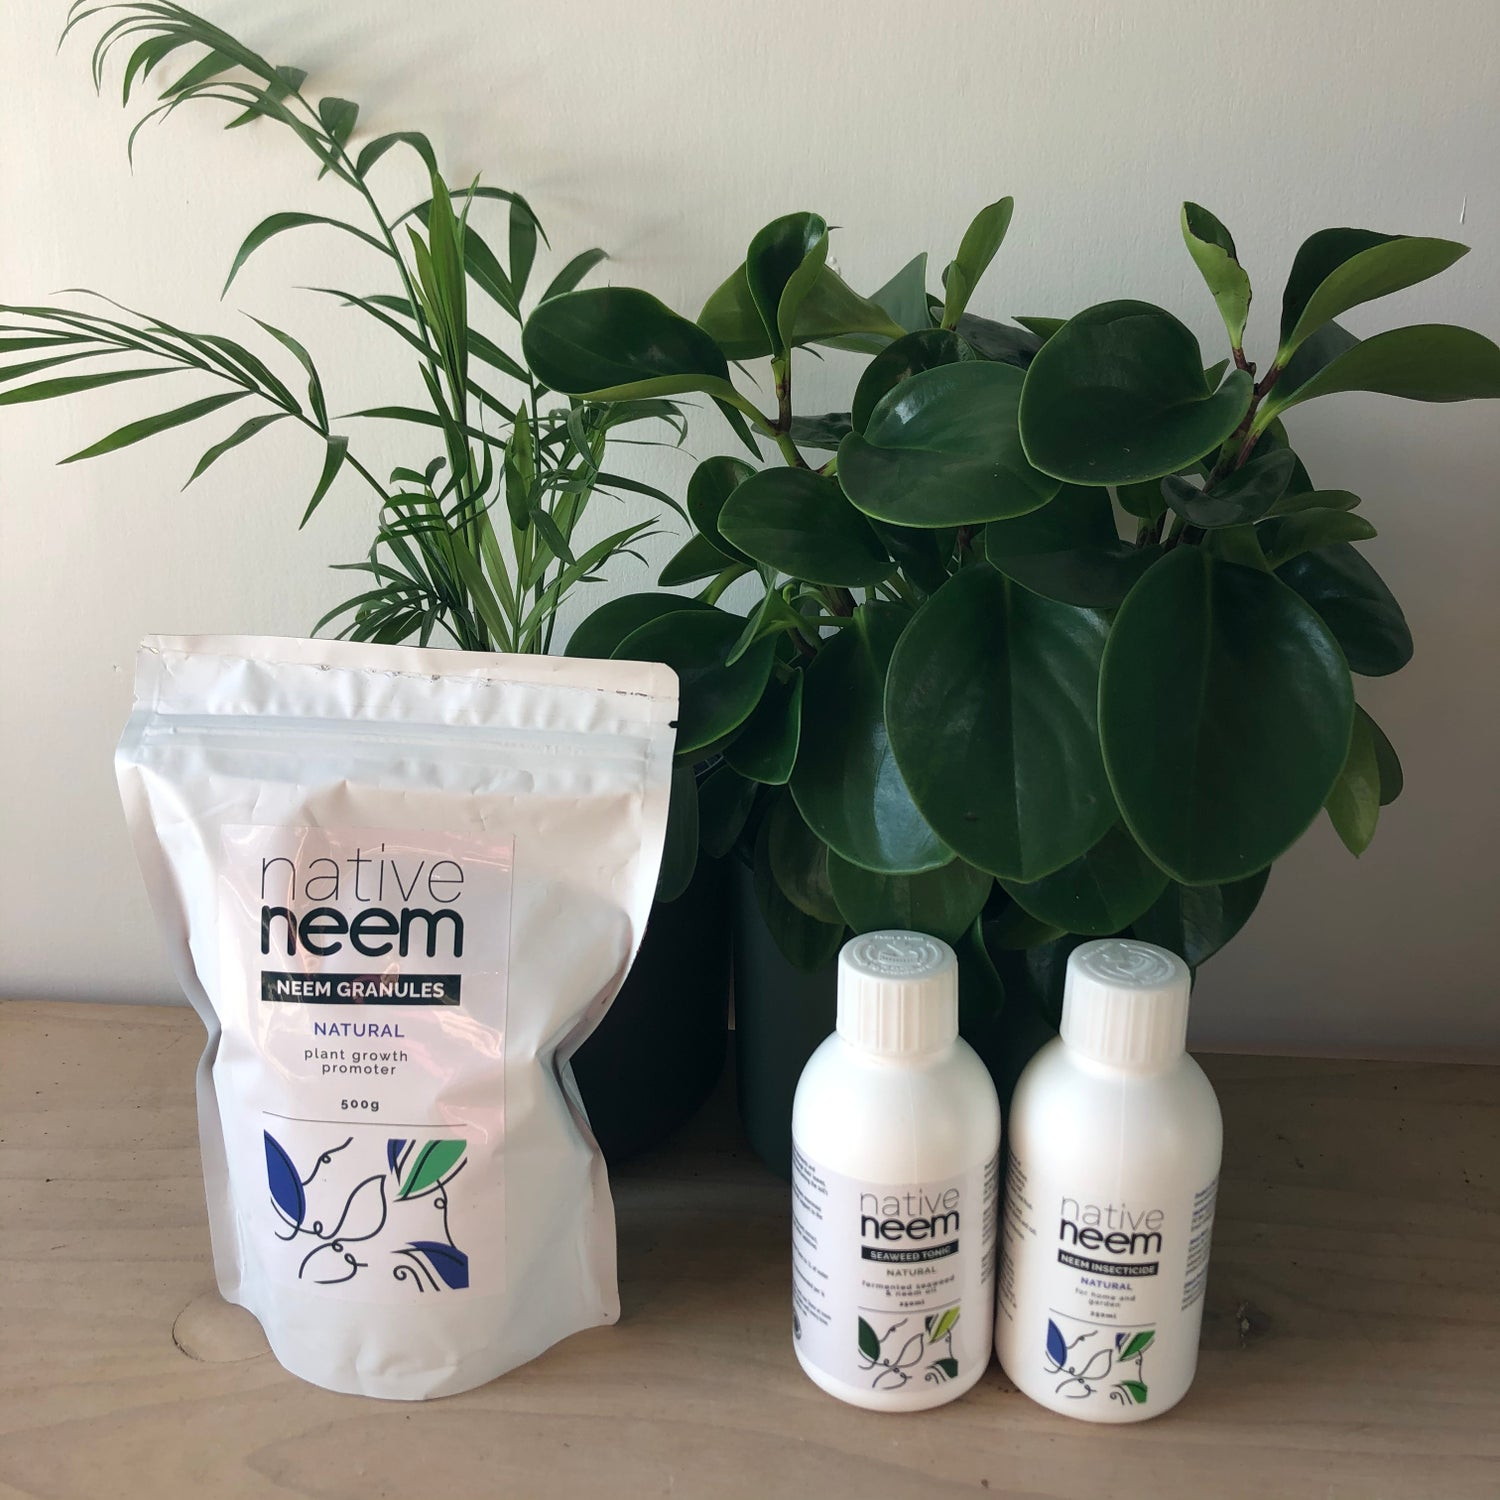 Image of Native Neem organic Neem insecticide